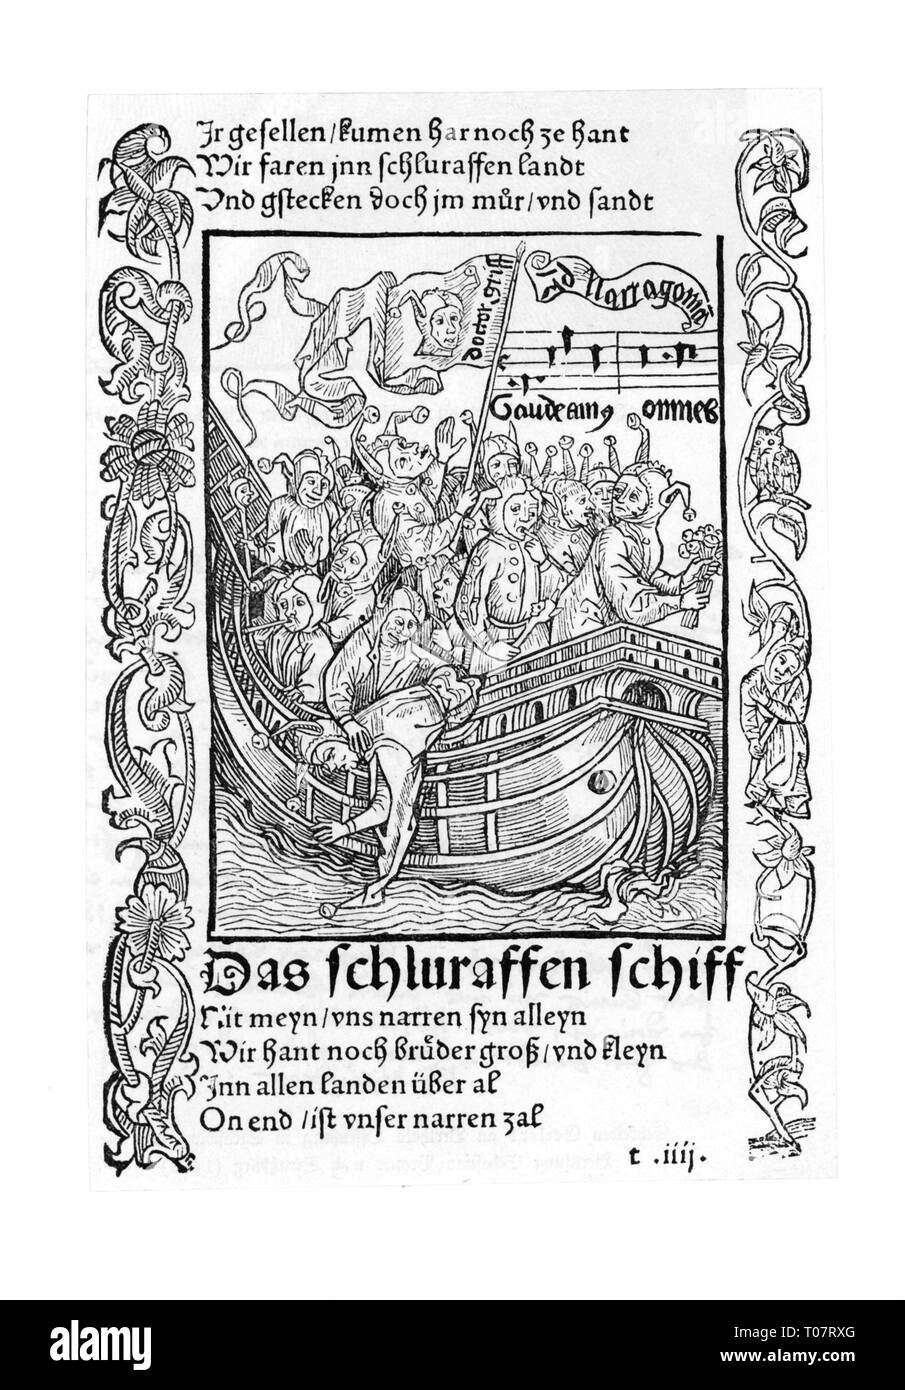 literature, 'Ship of Fools', by Sebastian Brant, woodcut, 'The Cuckoo Ship', first edition, printed by Johann Bergmann von Olpe, Basel, 1494, Additional-Rights-Clearance-Info-Not-Available - Stock Image